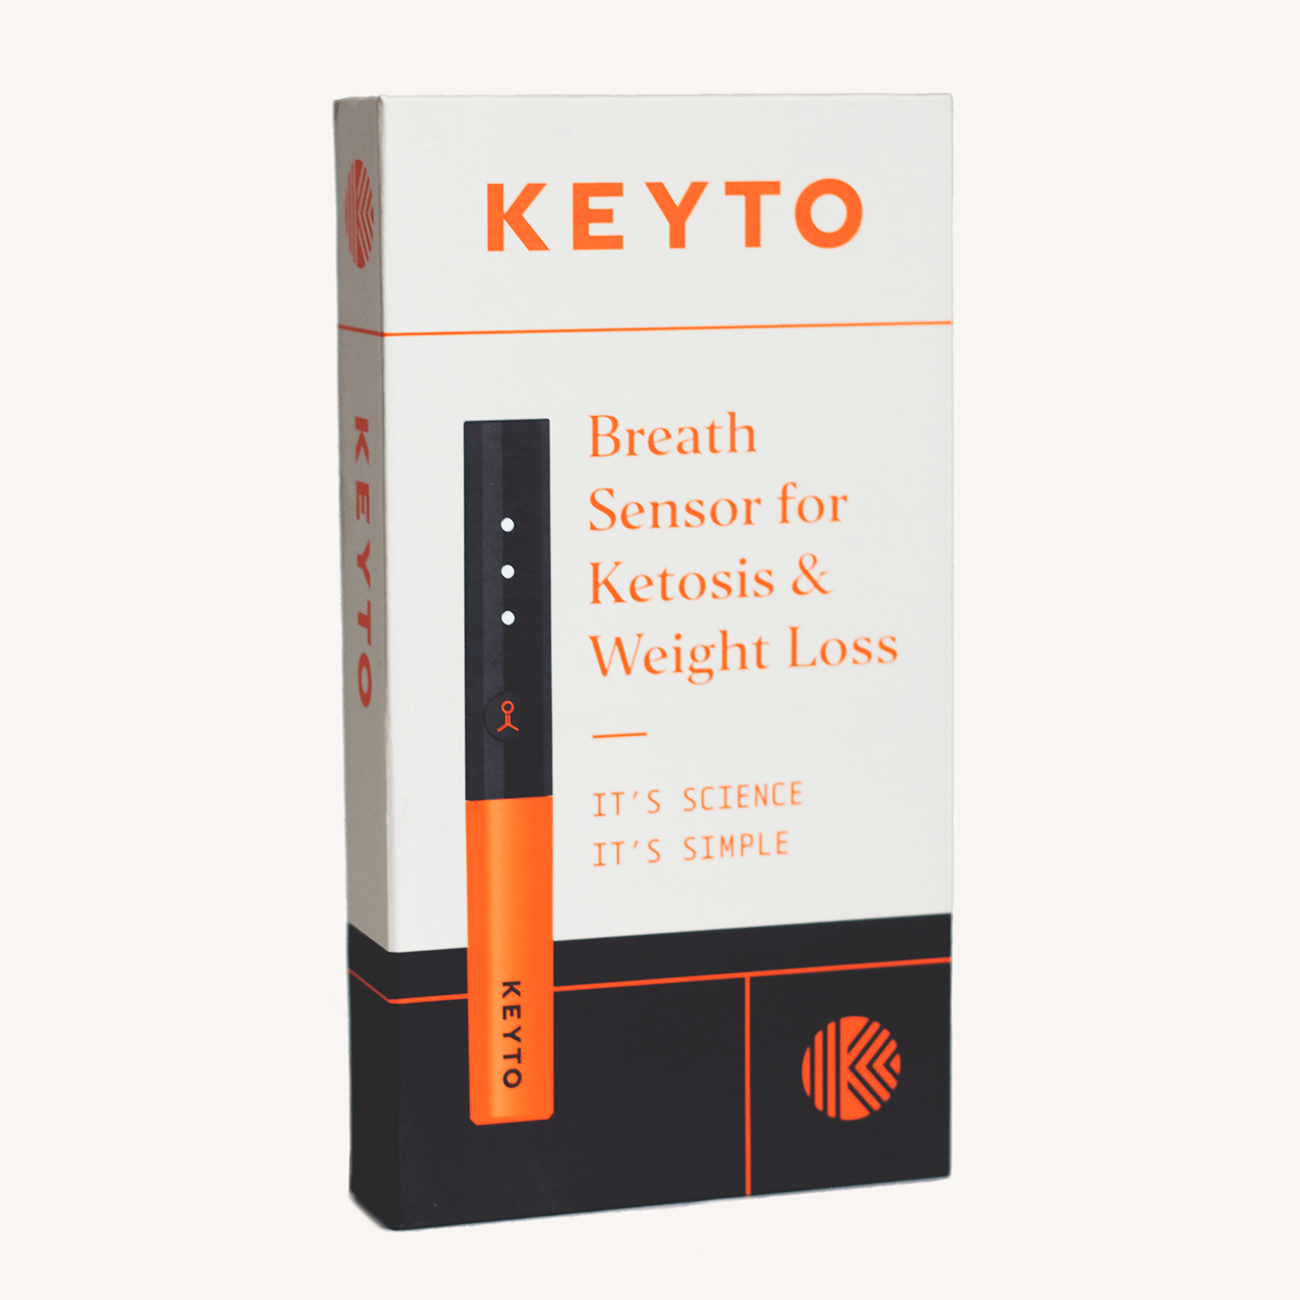 Keyto Breath Sensor - $29 / Month Membership (billed bi-annually)